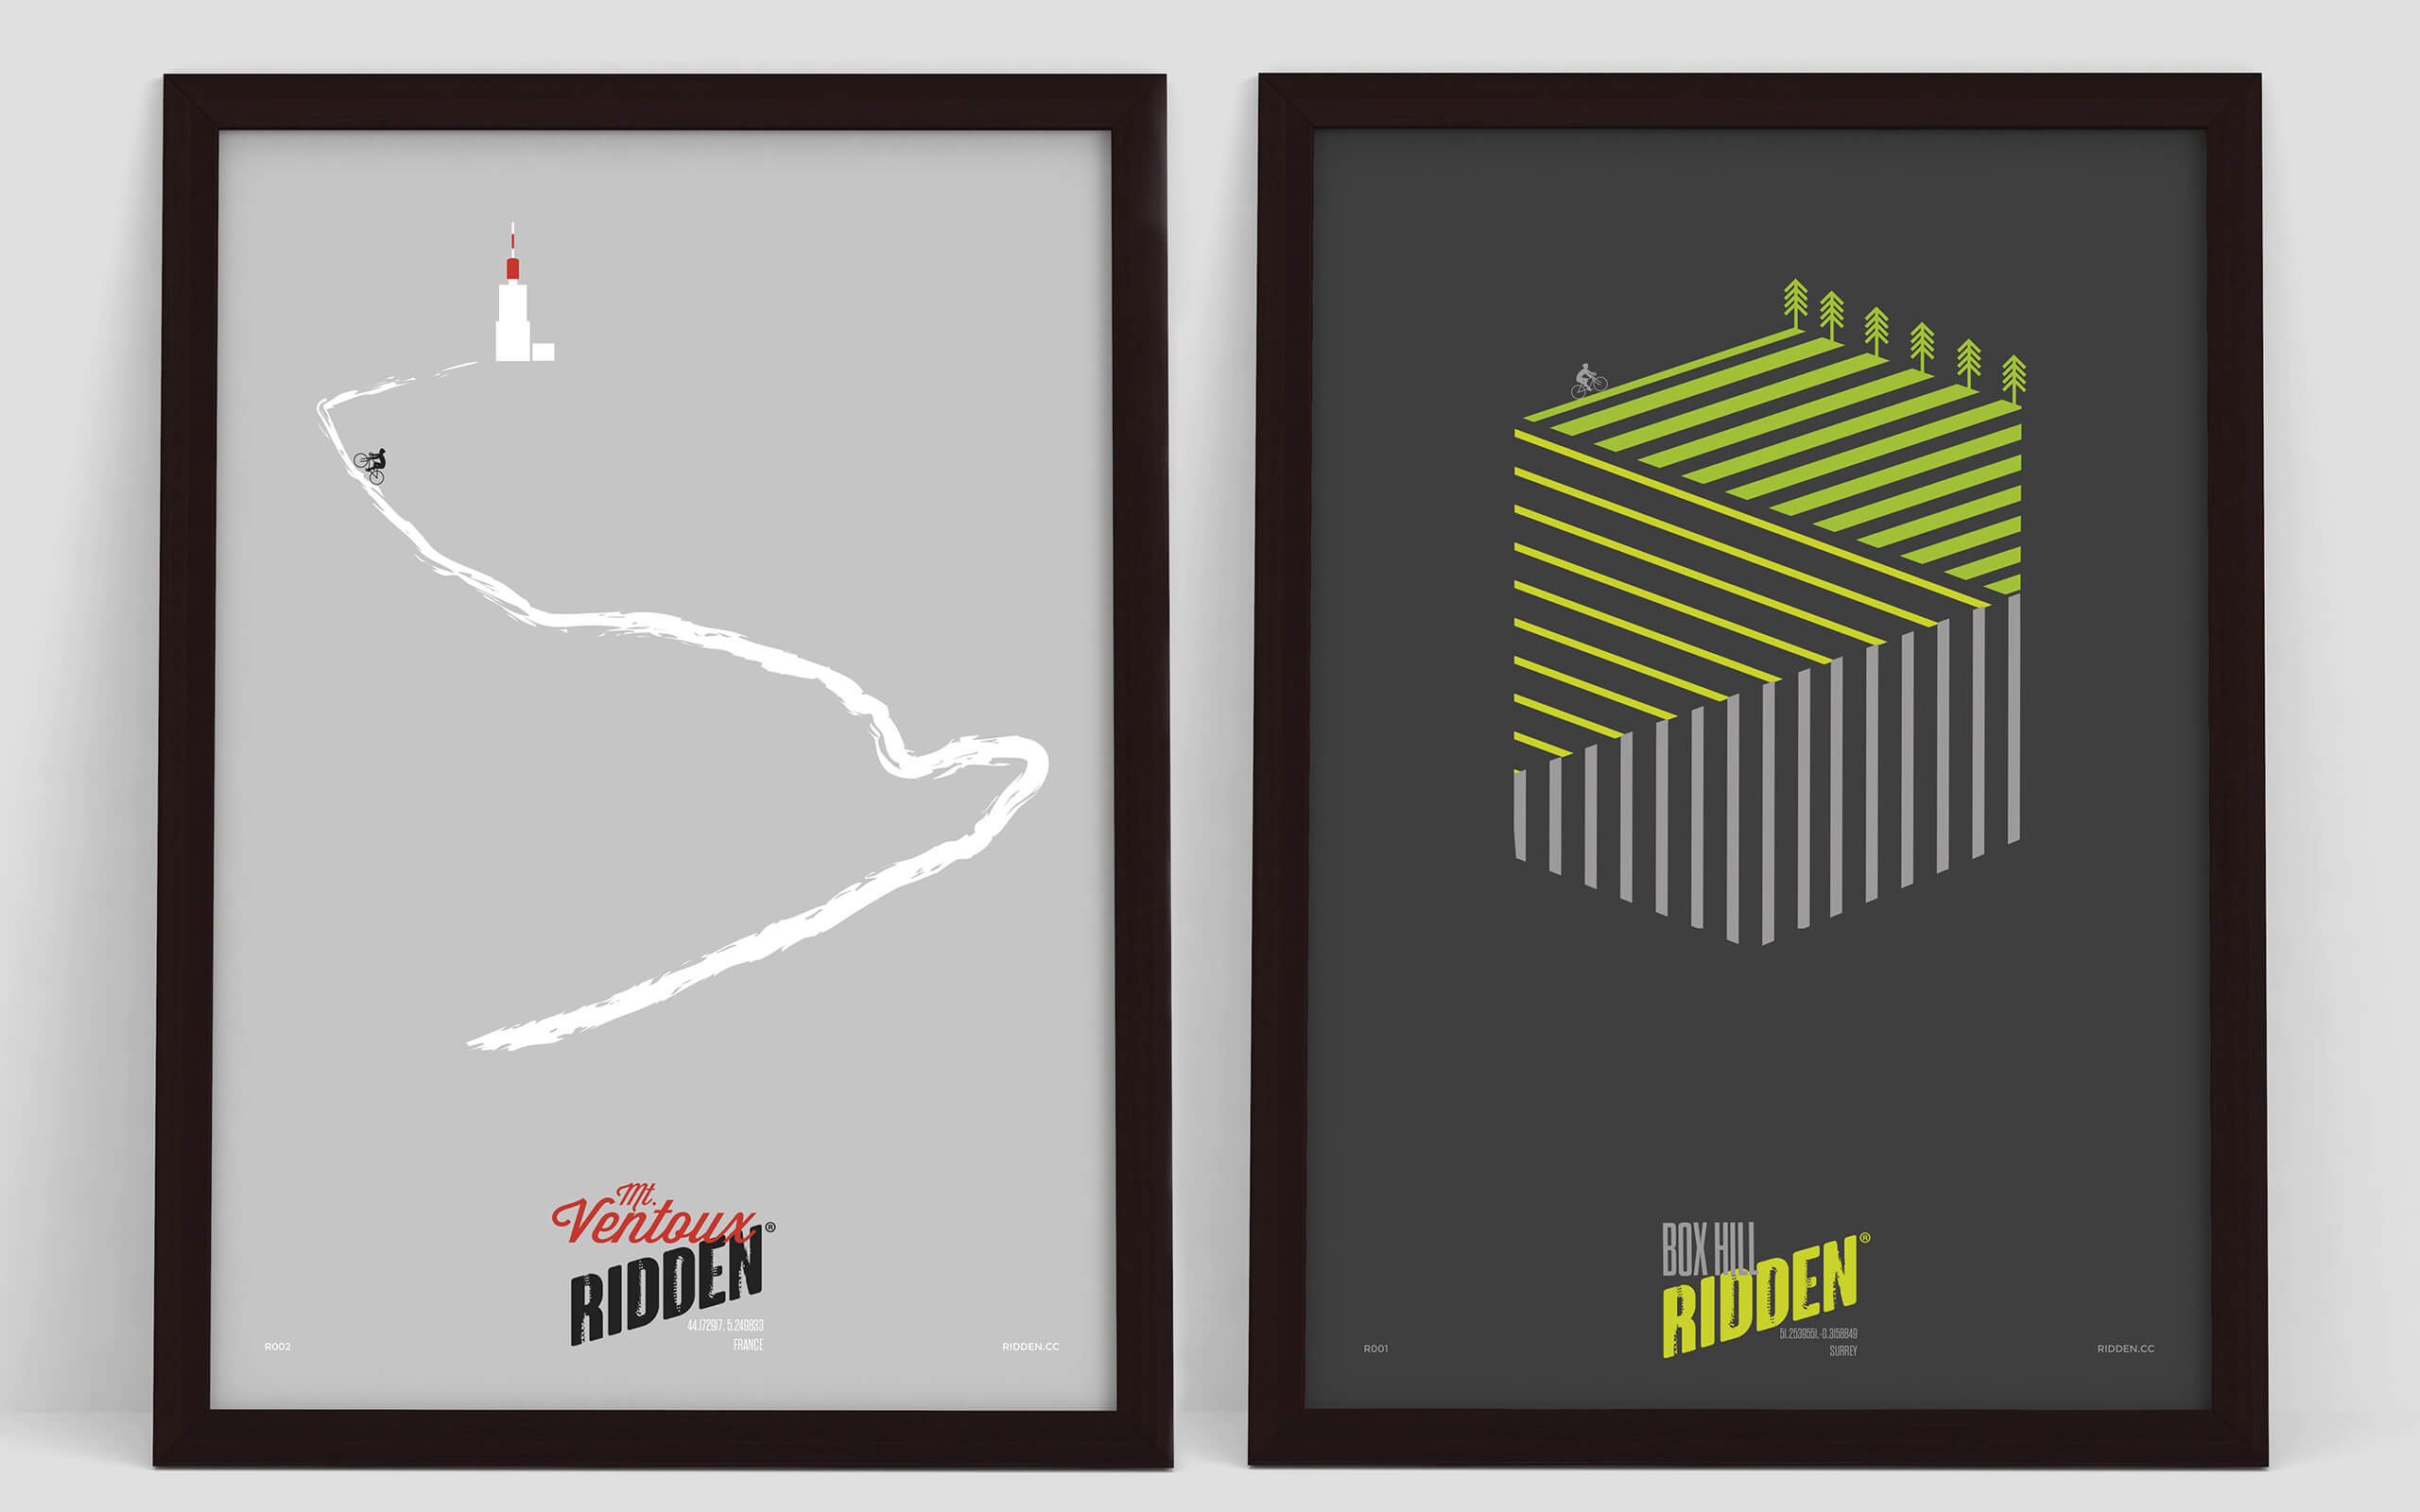 Ridden Ventoux and Box Hill poster designs